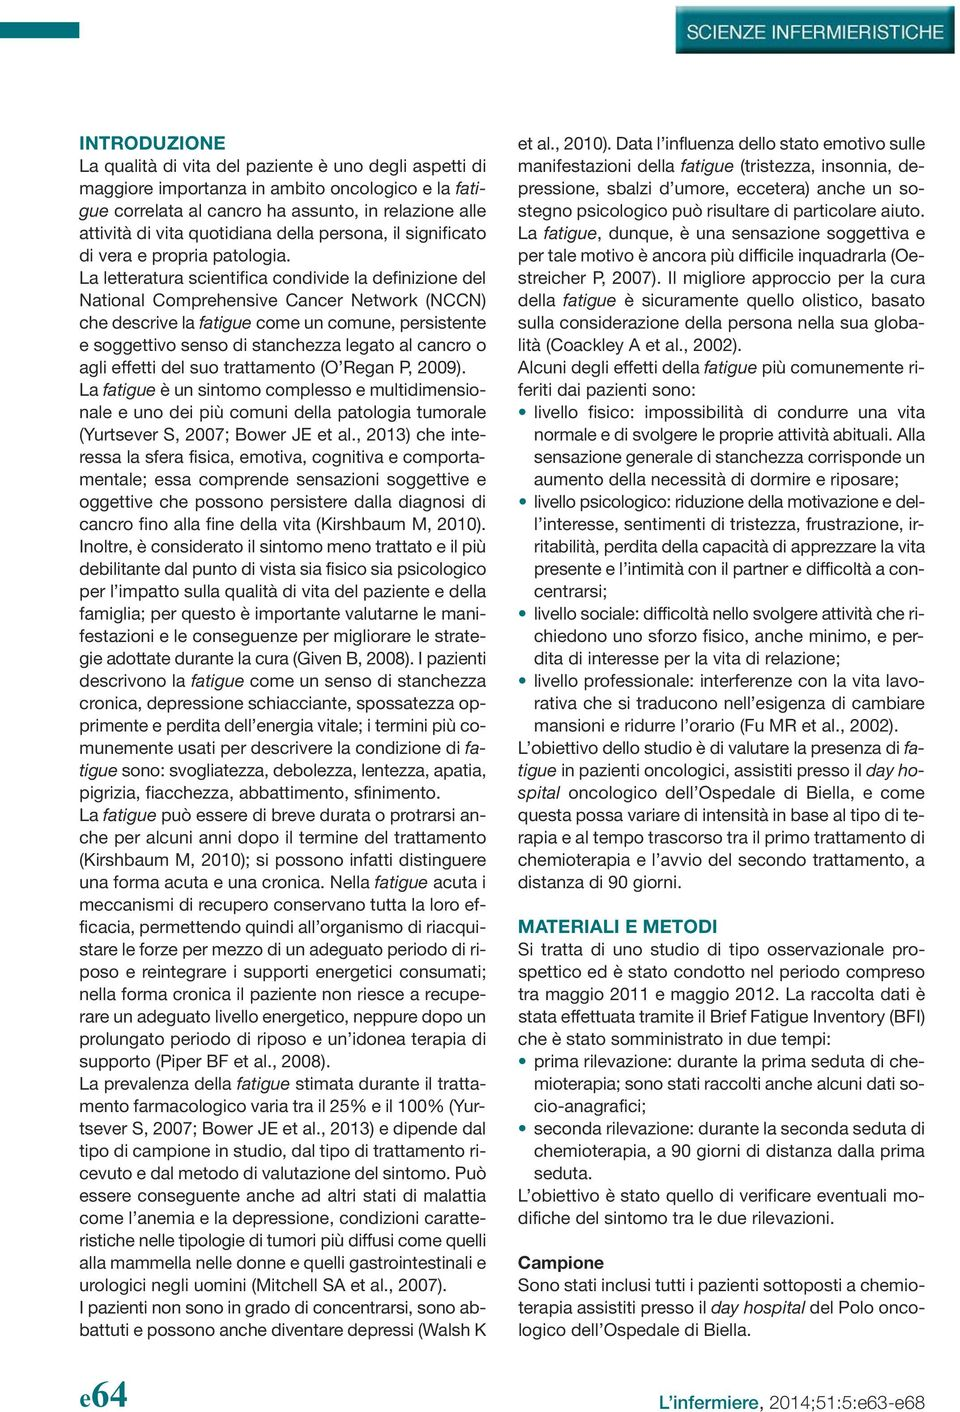 La letteratura scientifica condivide la definizione del National Comprehensive Cancer Network (NCCN) che descrive la fatigue come un comune, persistente e soggettivo senso di stanchezza legato al